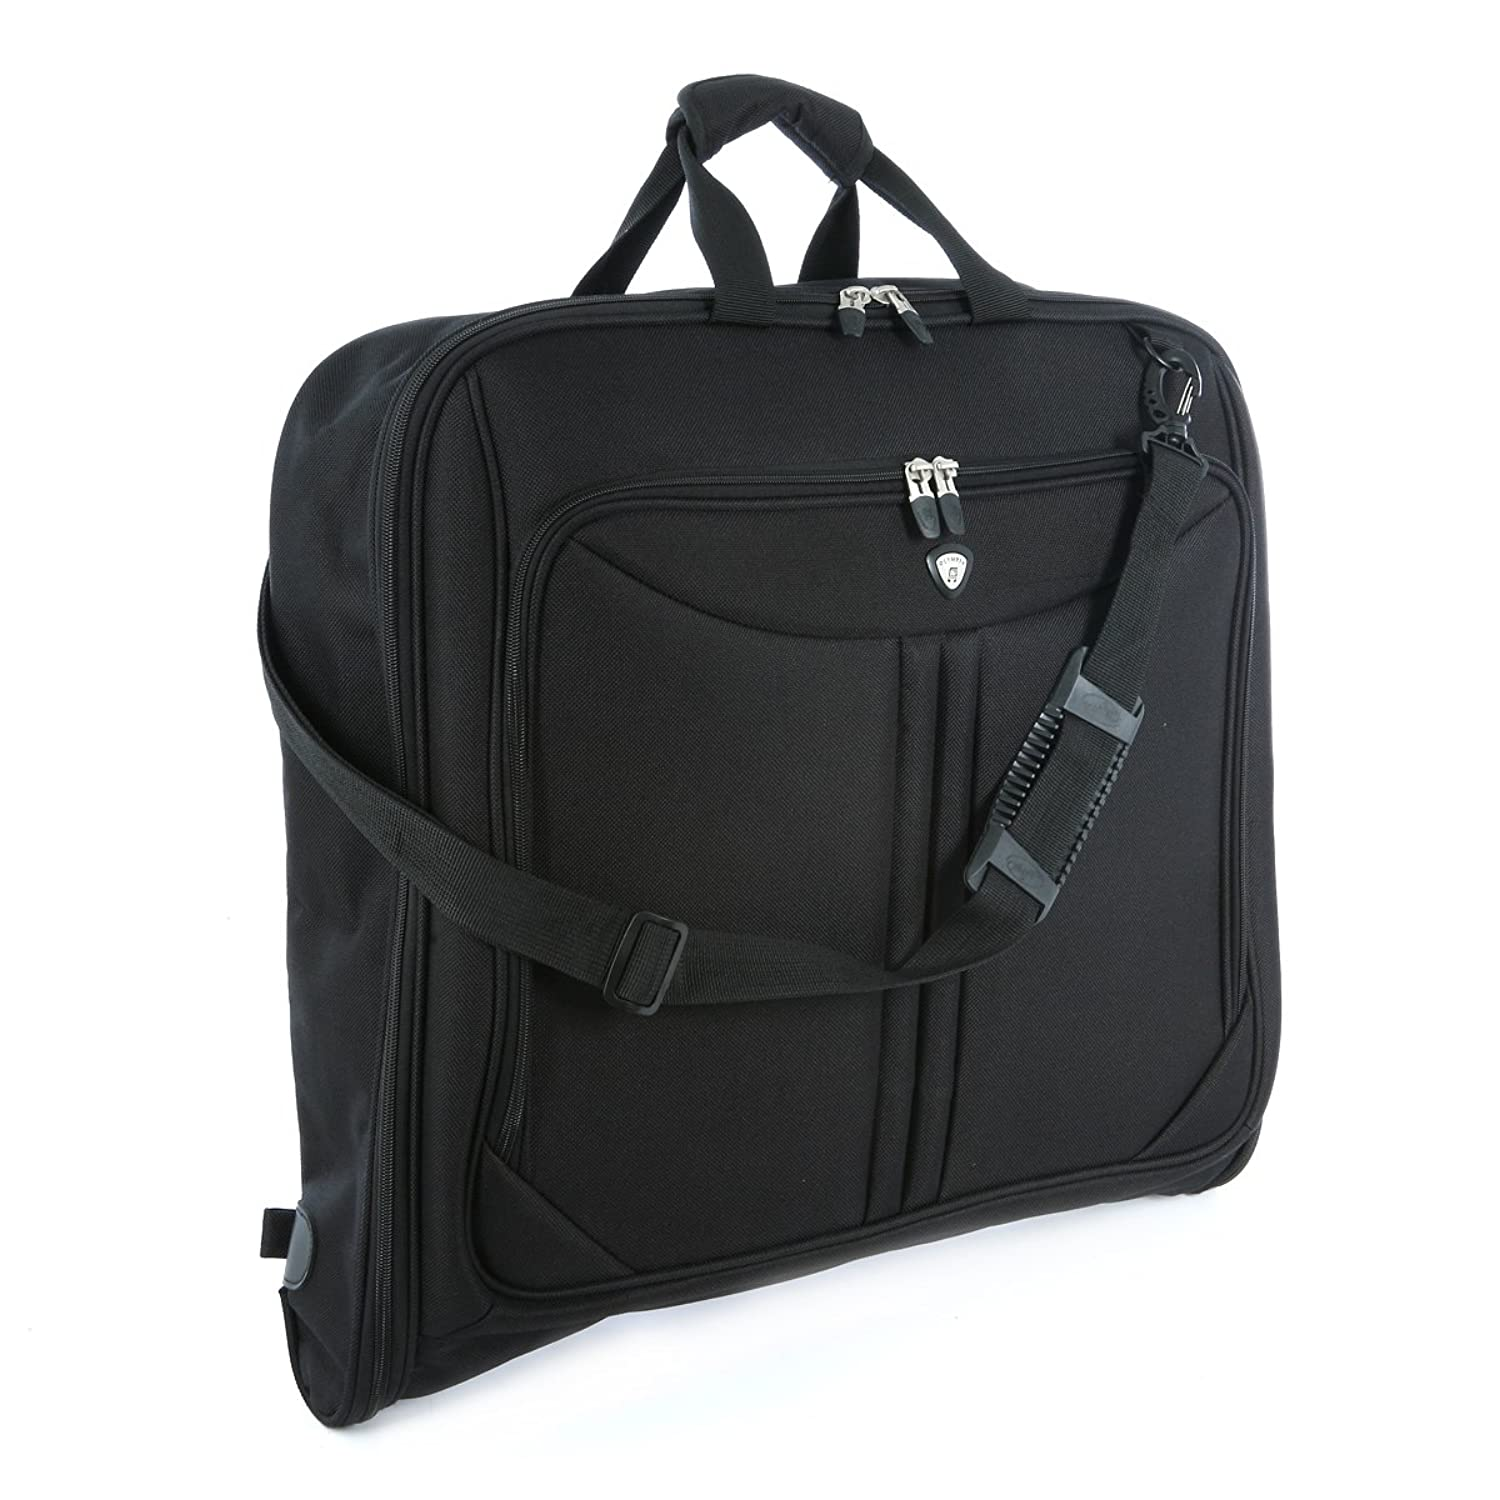 Amazon.com | Olympia Luggage Deluxe Garment Bag, Black, One Size ...